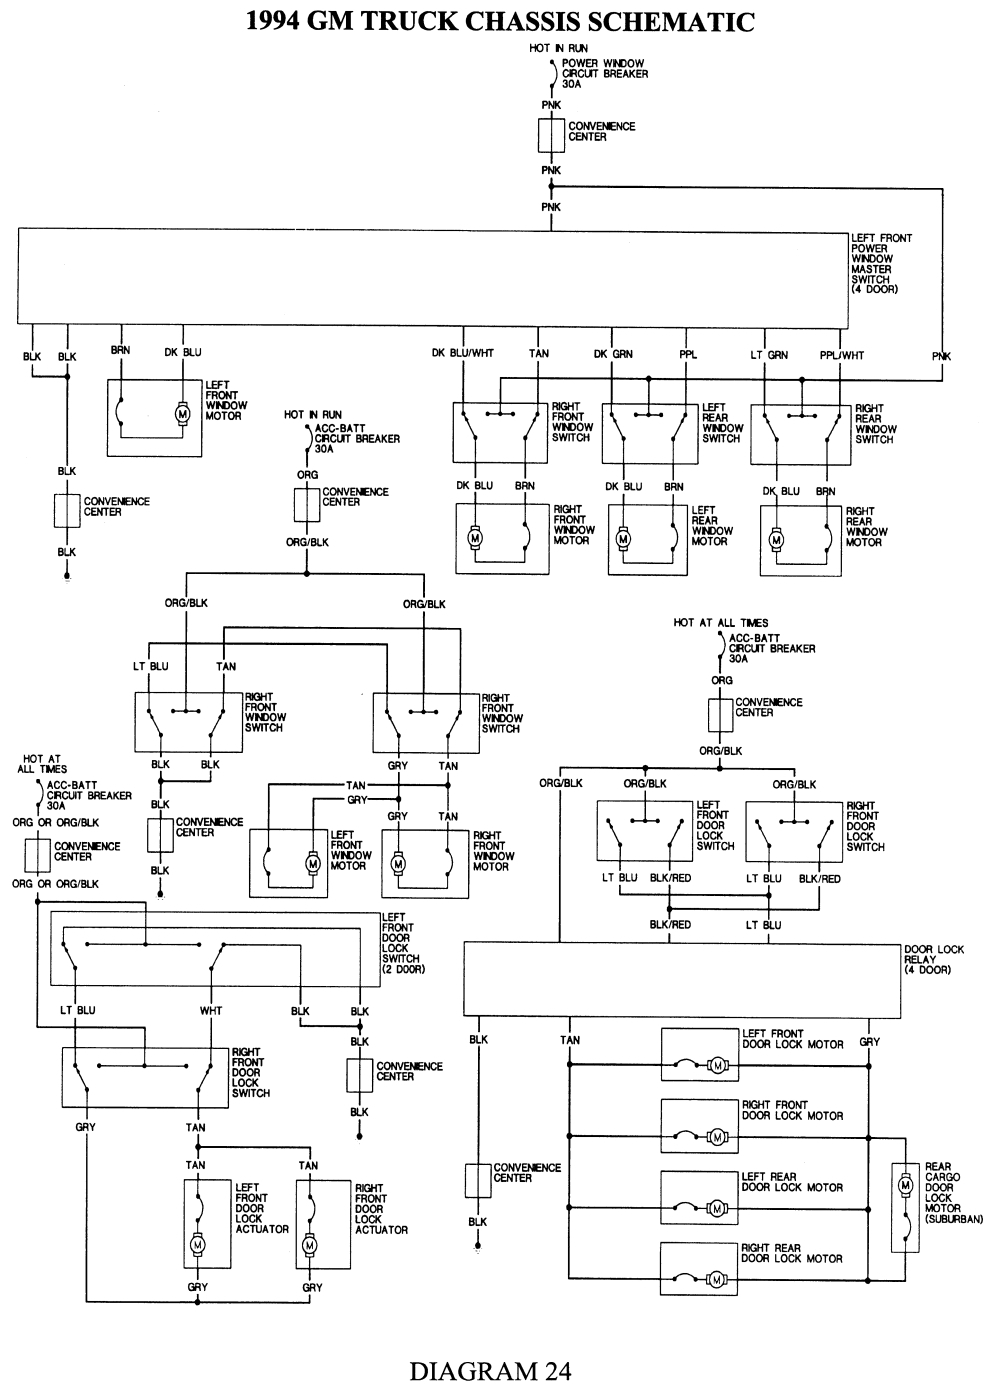 1999 Chevy Suburban Wiring Diagram